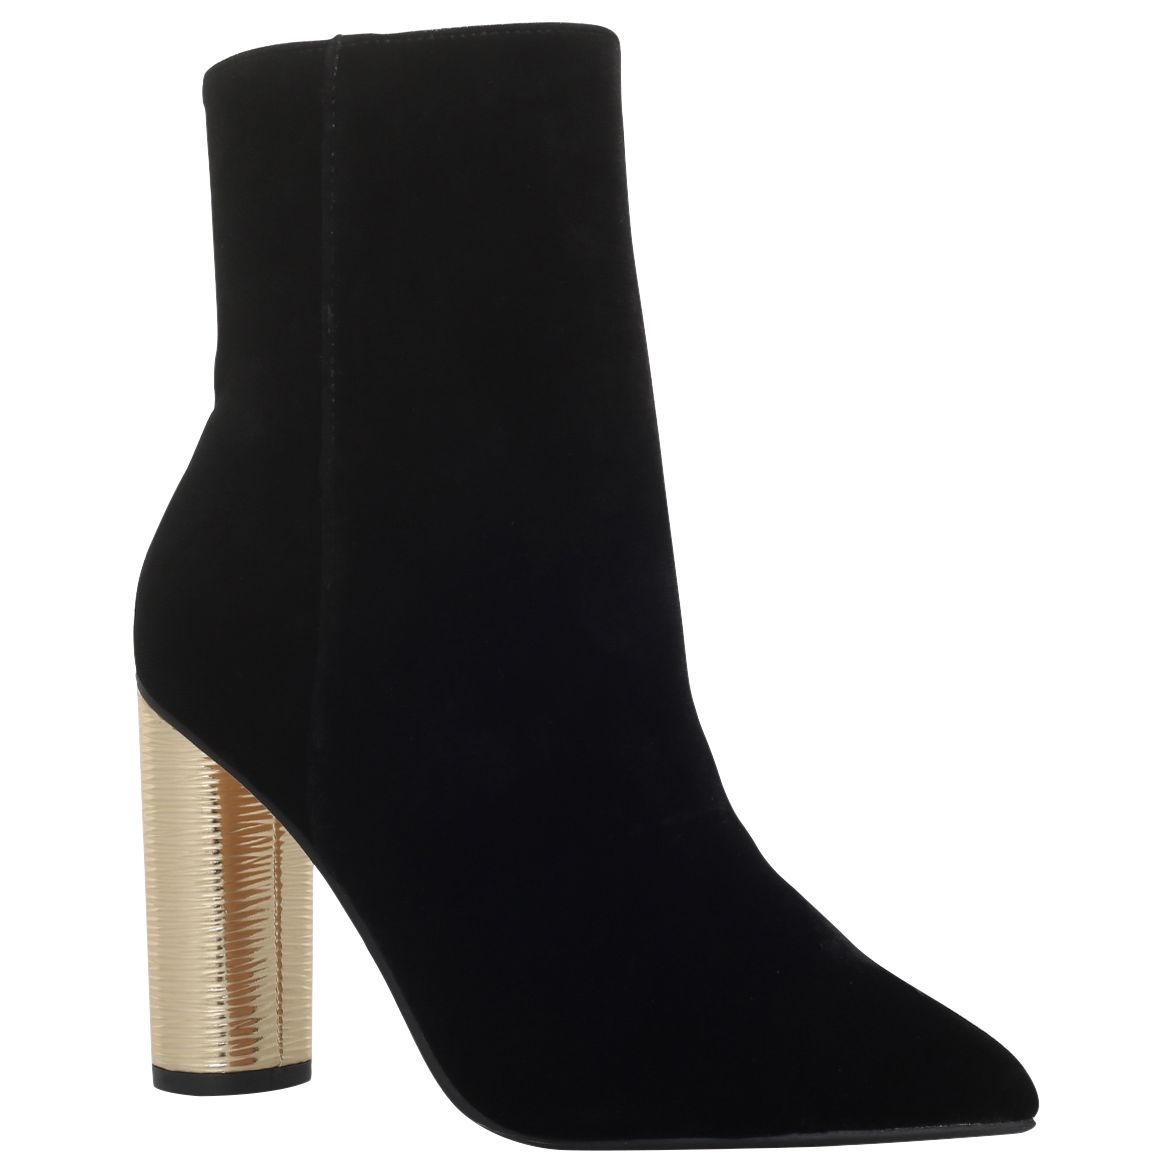 KG by Kurt Geiger KG by Kurt Geiger Reign Pointed Toe High Block Heel Ankle Boots, Black Velvet